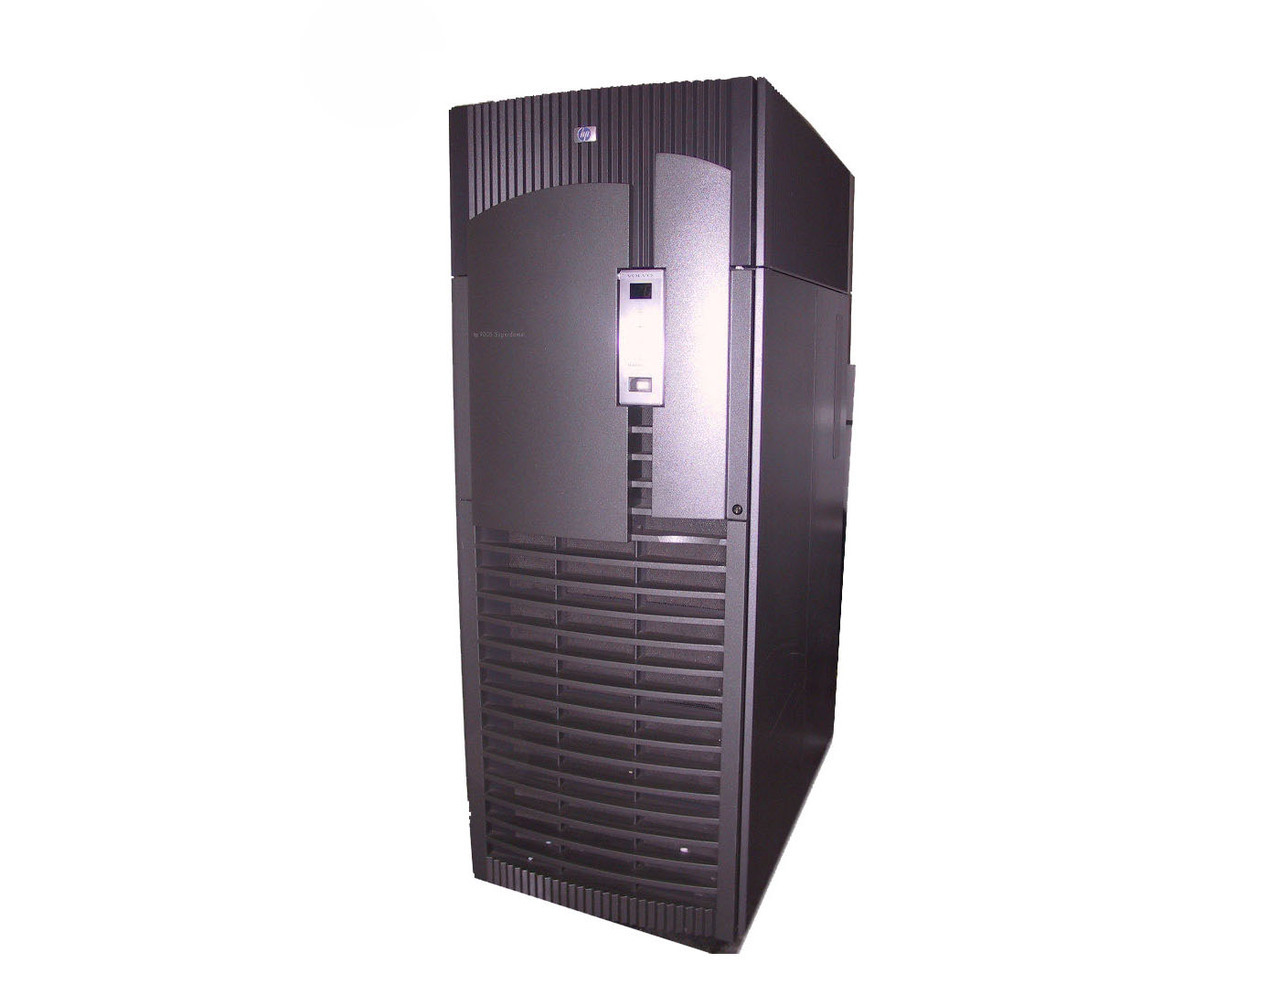 HP 9000 Superdome 16 Proccessor, Sx1000 Chipset Server